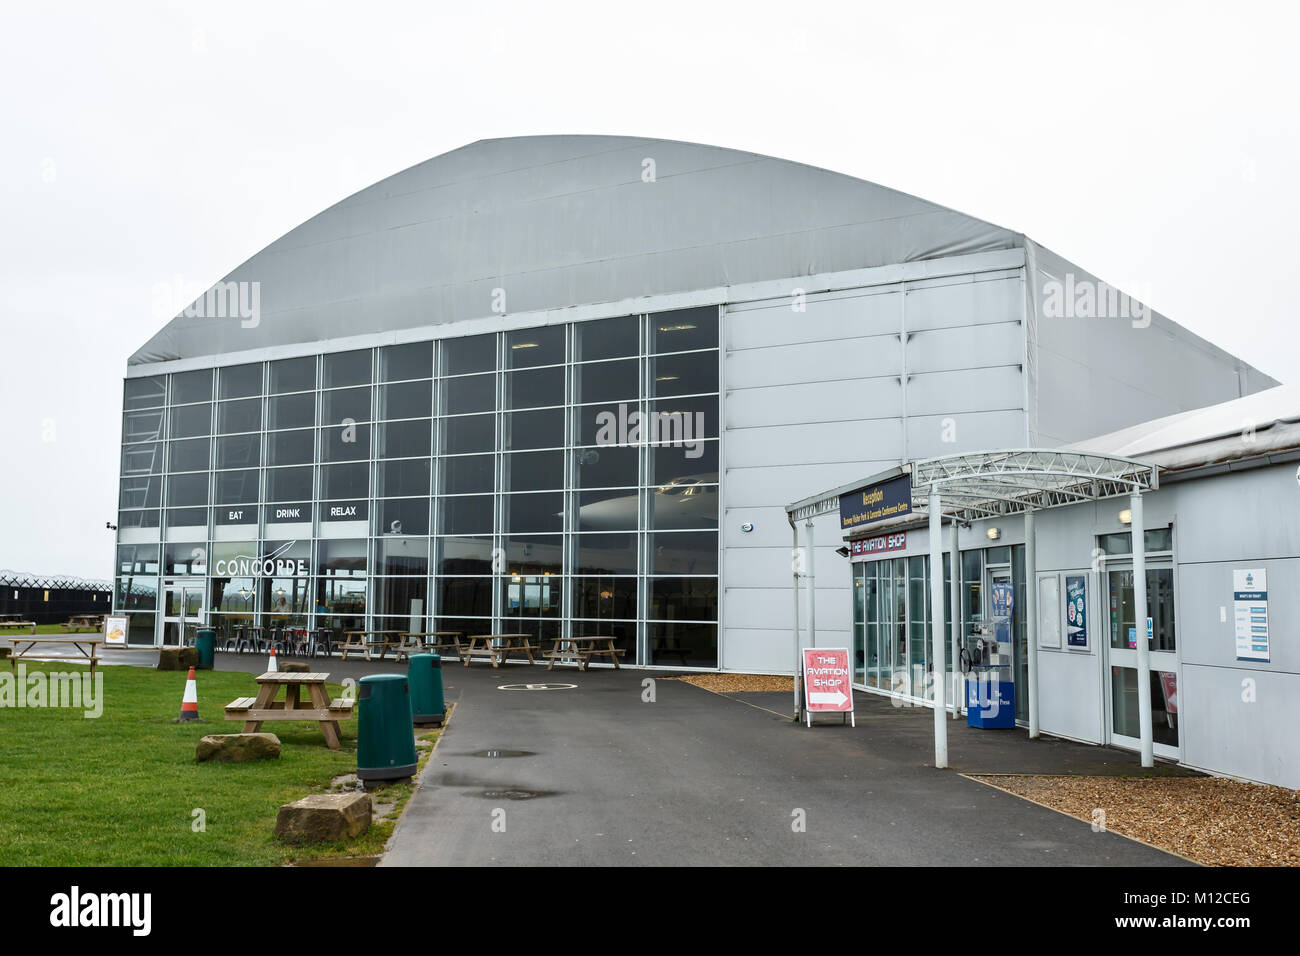 The Concorde hangar  restaurant and gift shop at Manchester Stock     The Concorde hangar  restaurant and gift shop at Manchester International  Airport